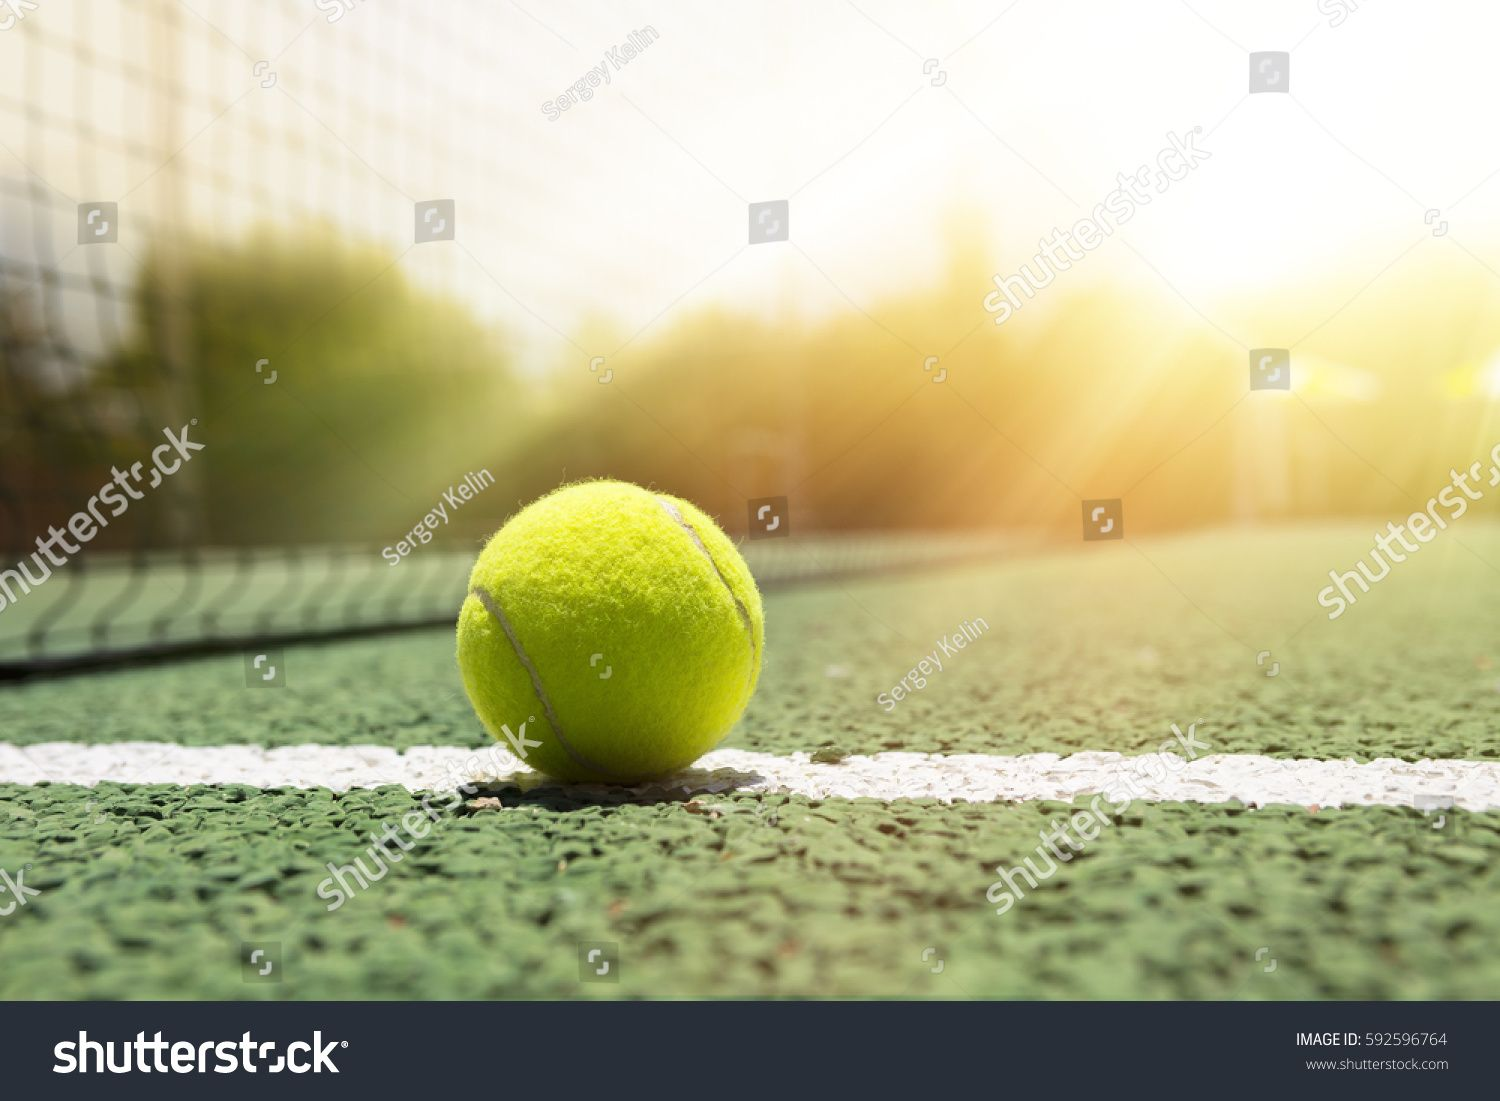 Tennis Ball On A Outdoor Green Hard Court Ad Affiliate